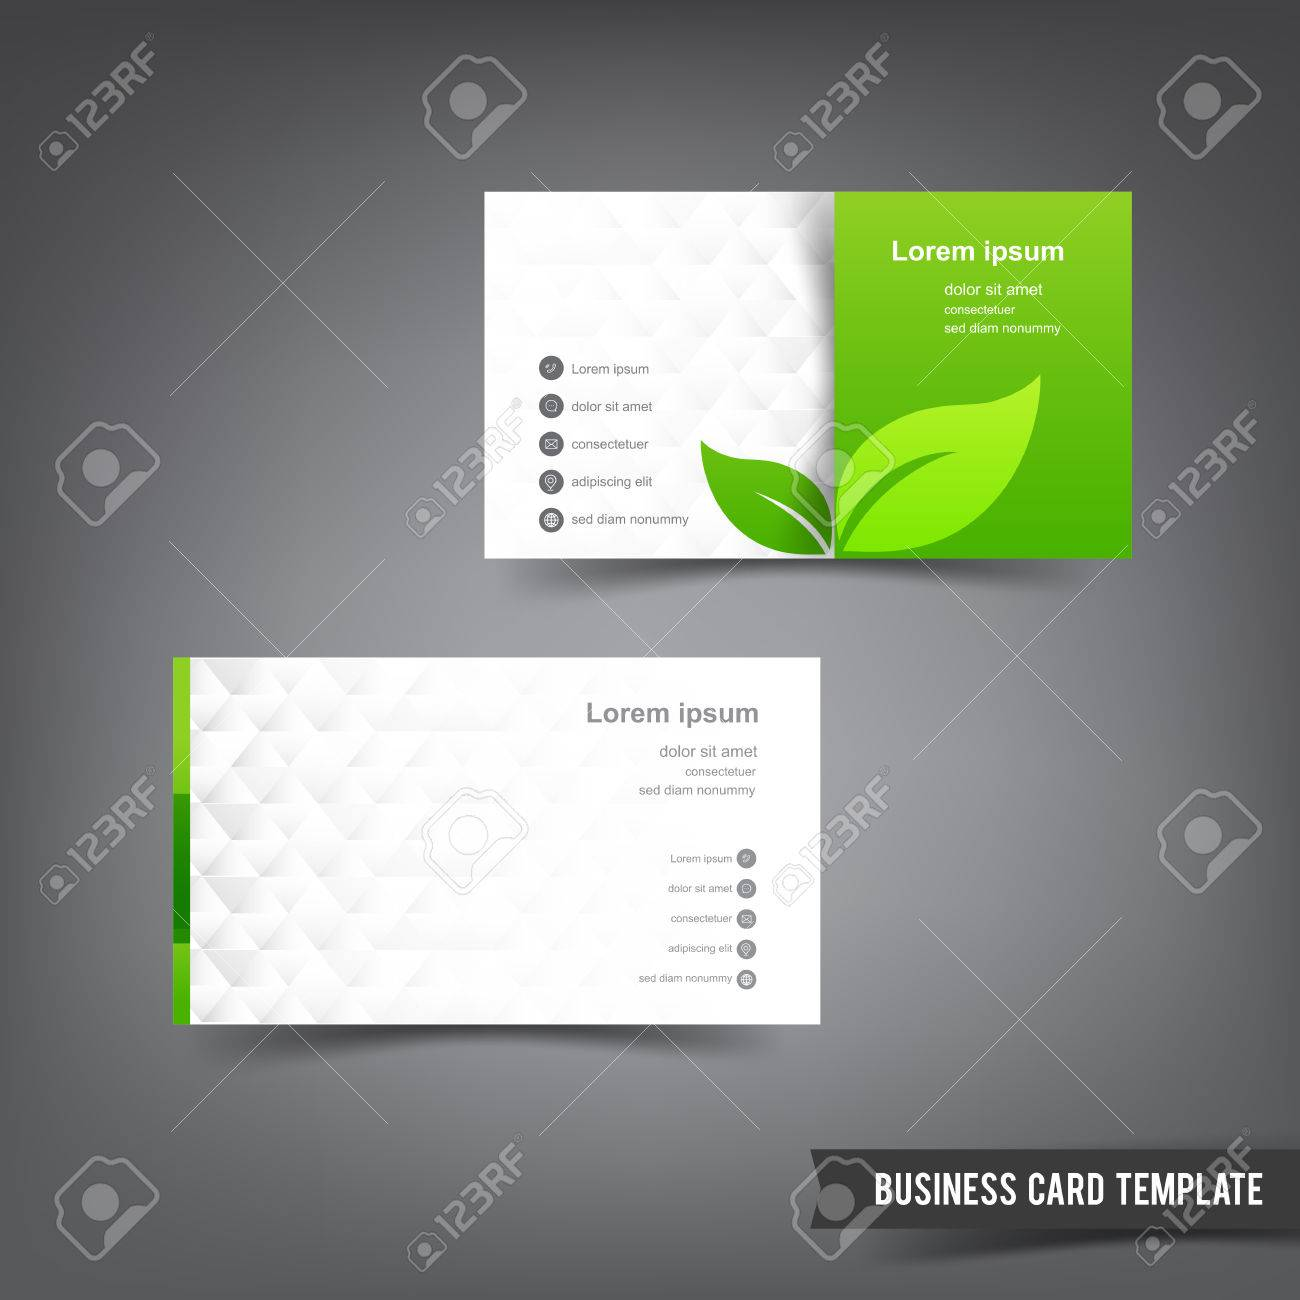 Design Your Own Photography Business Cards Image collections - Card ...